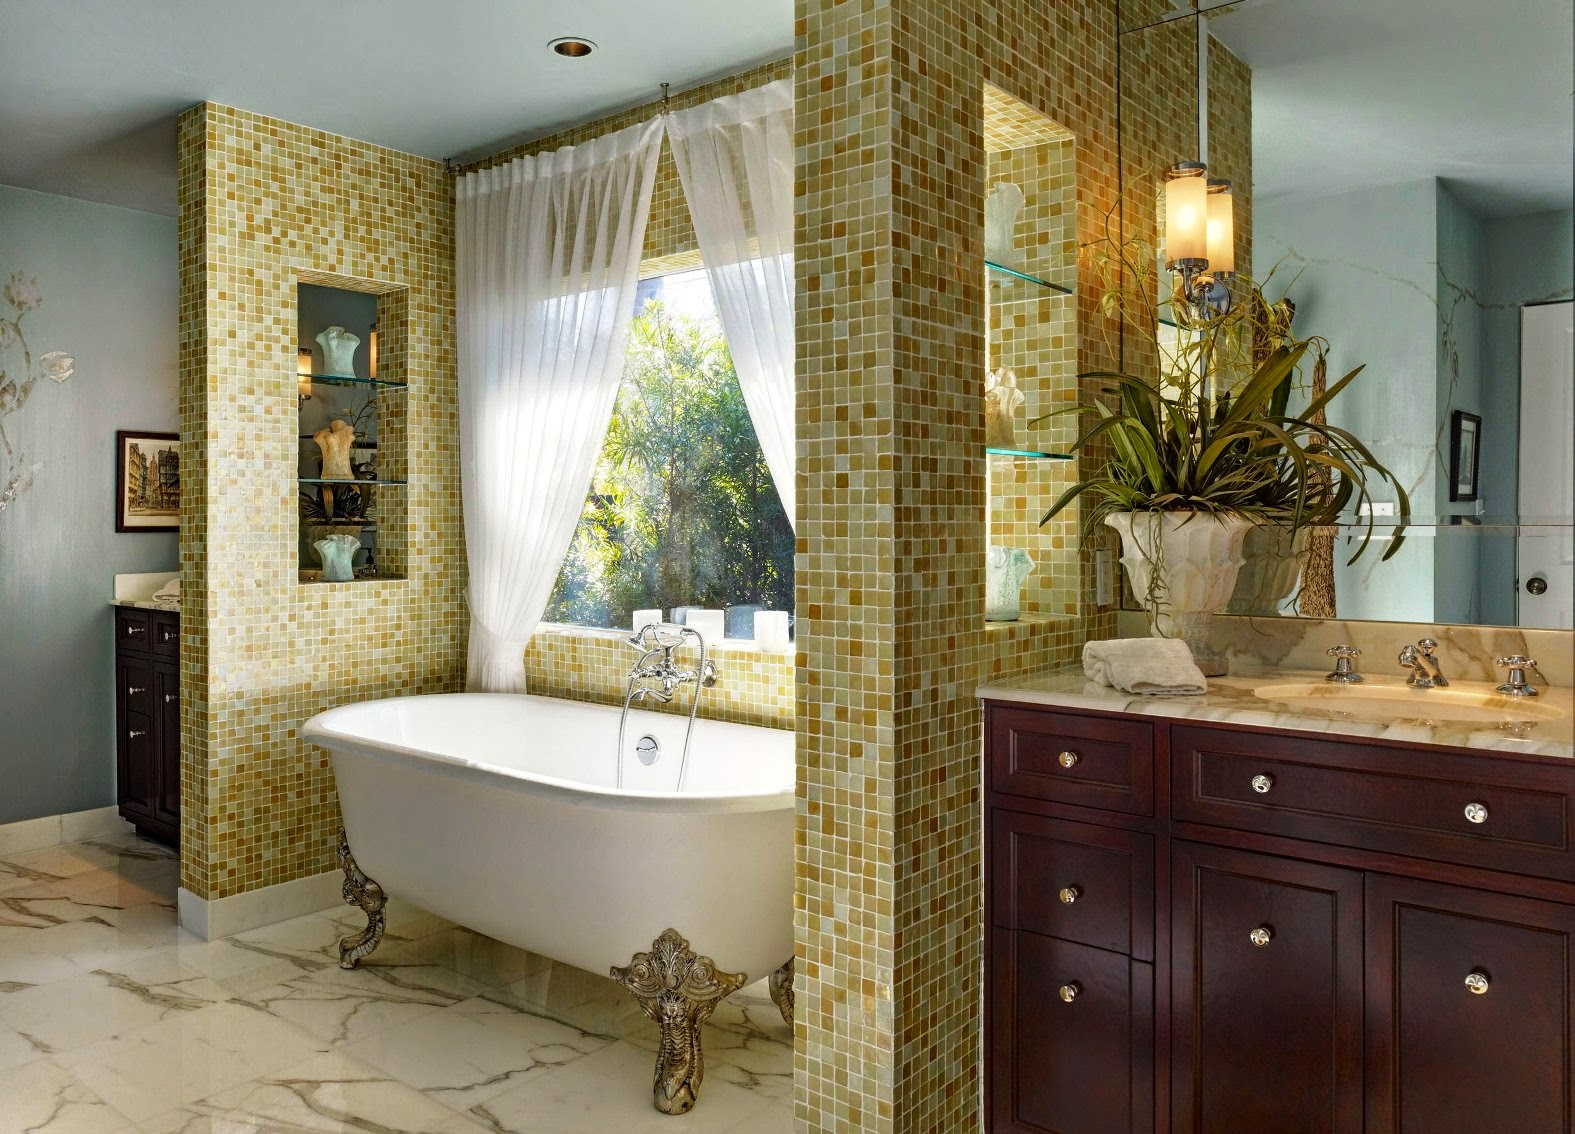 images italian style4 - Bathroom Design Ideas Italian